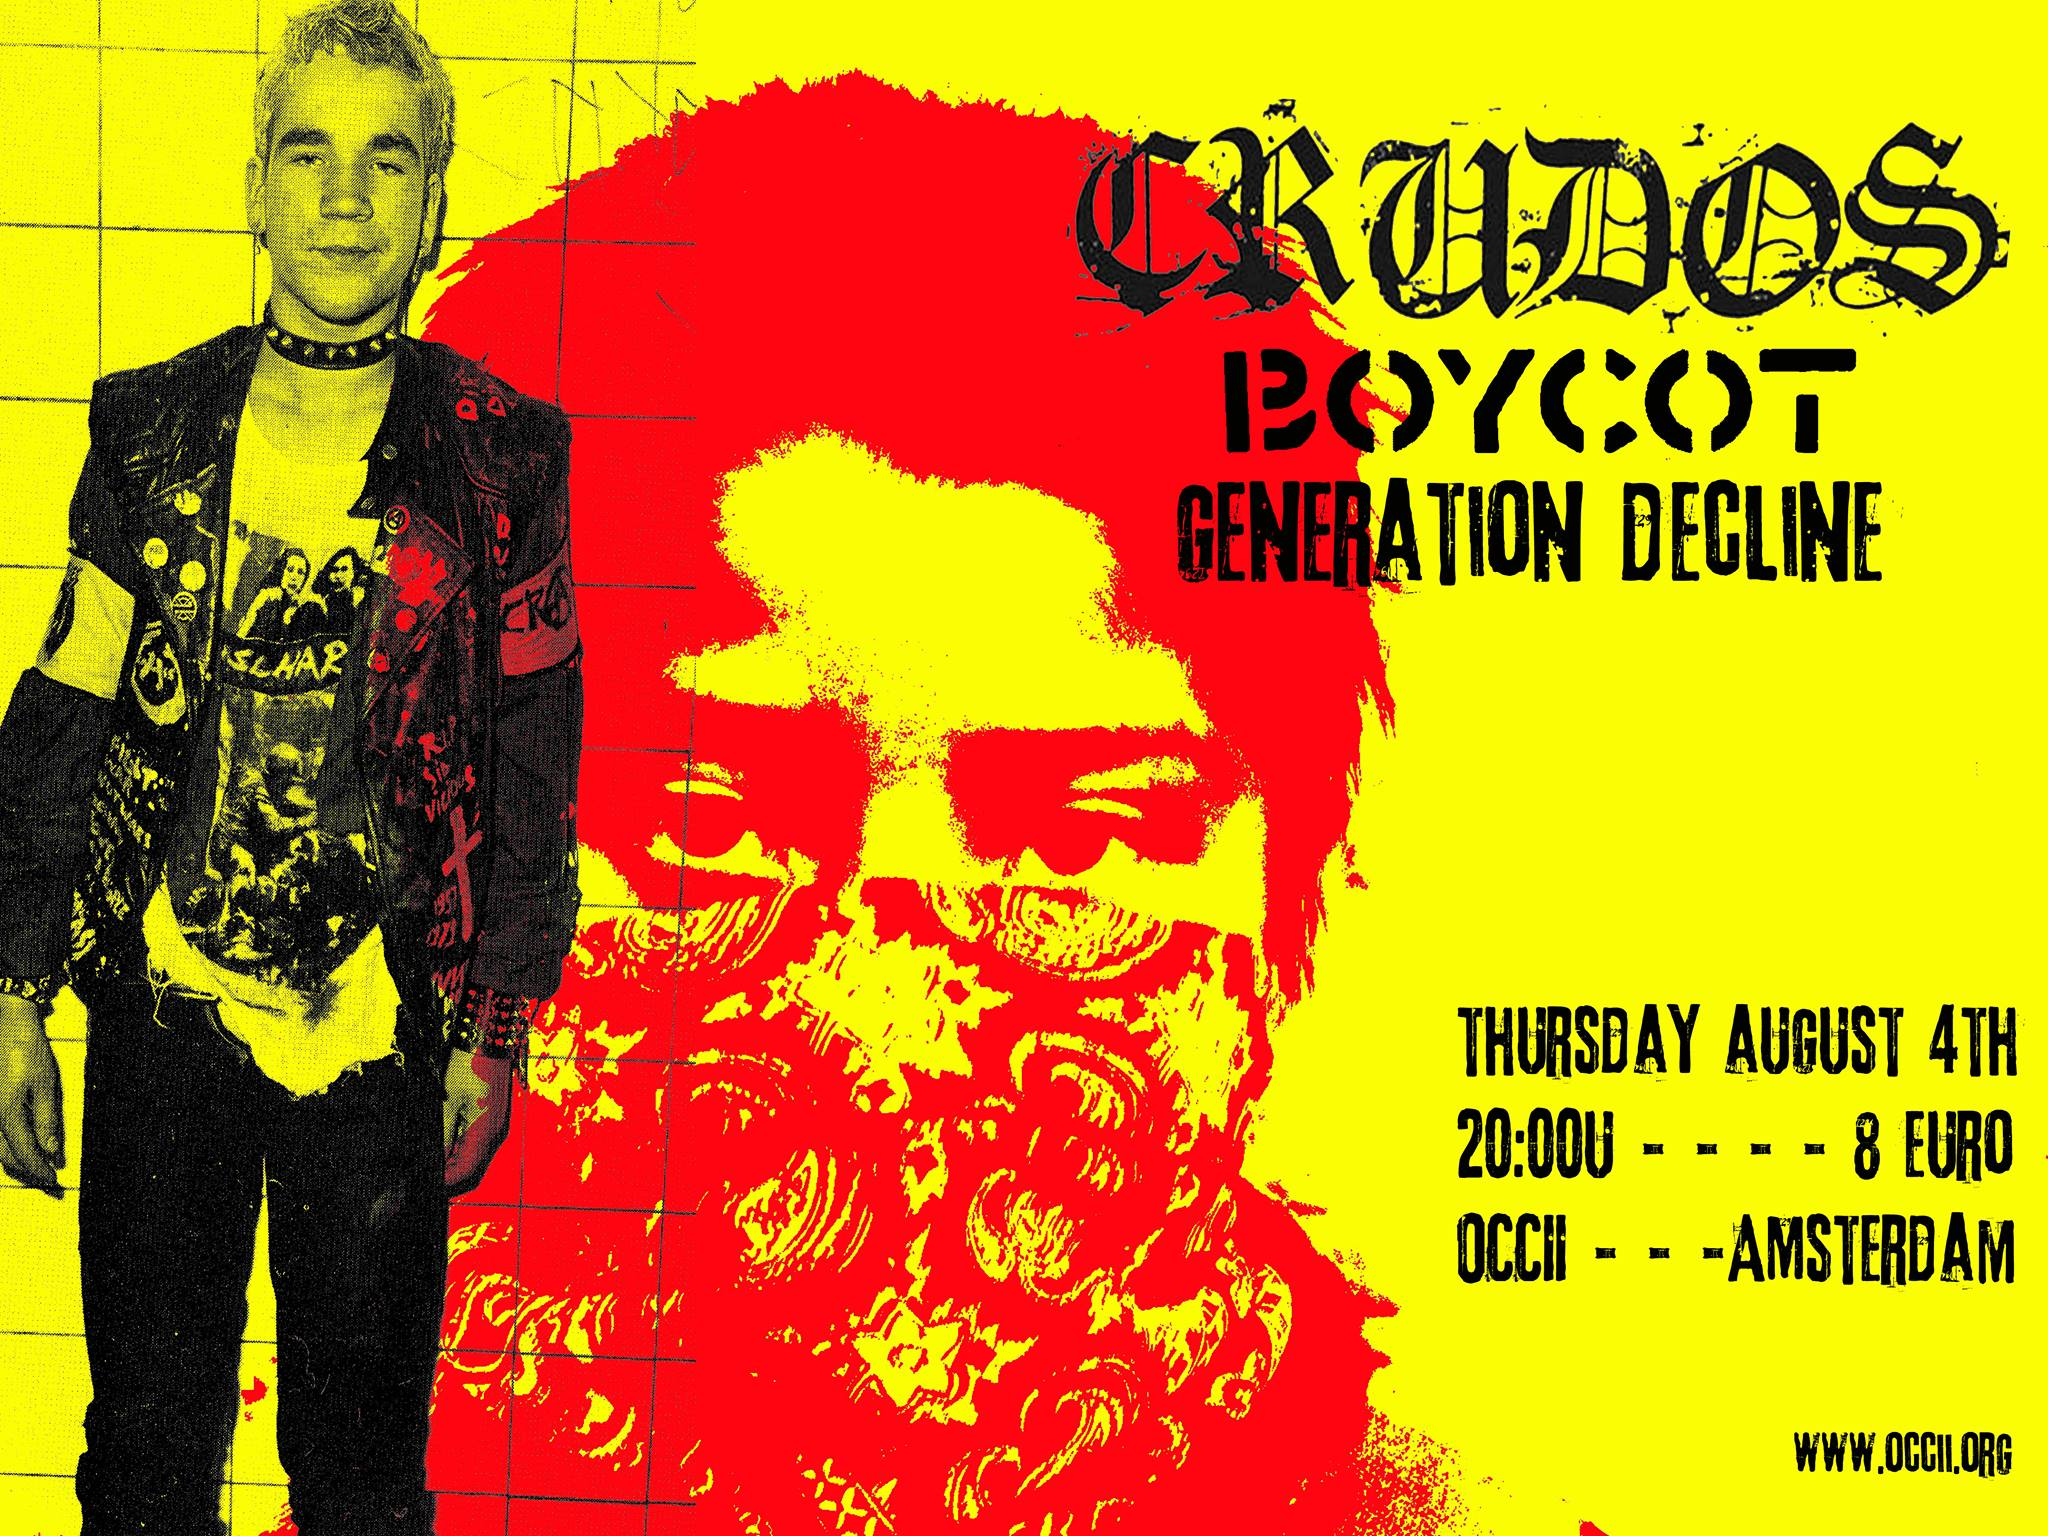 LOS CRUDOS (us) + BOYCOT + GENERATION DECLINE (us)